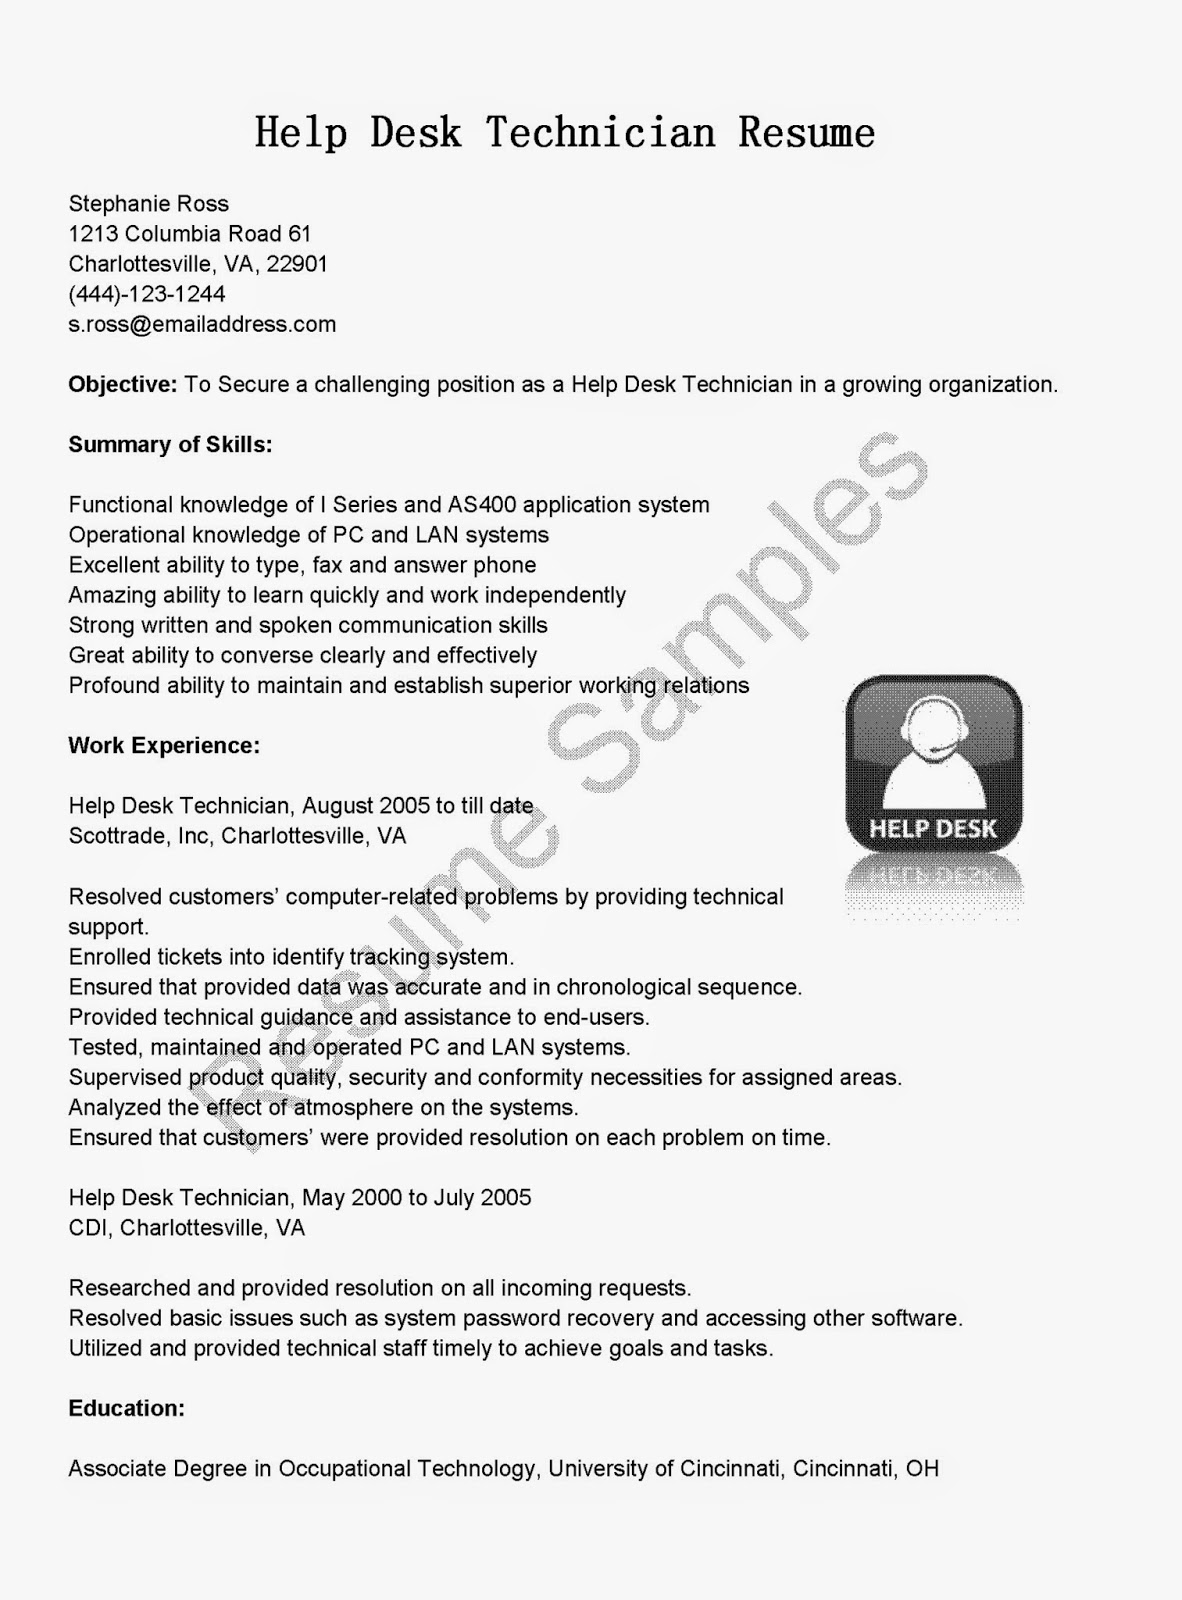 Resume Samples Help Desk Technician Resume Sample